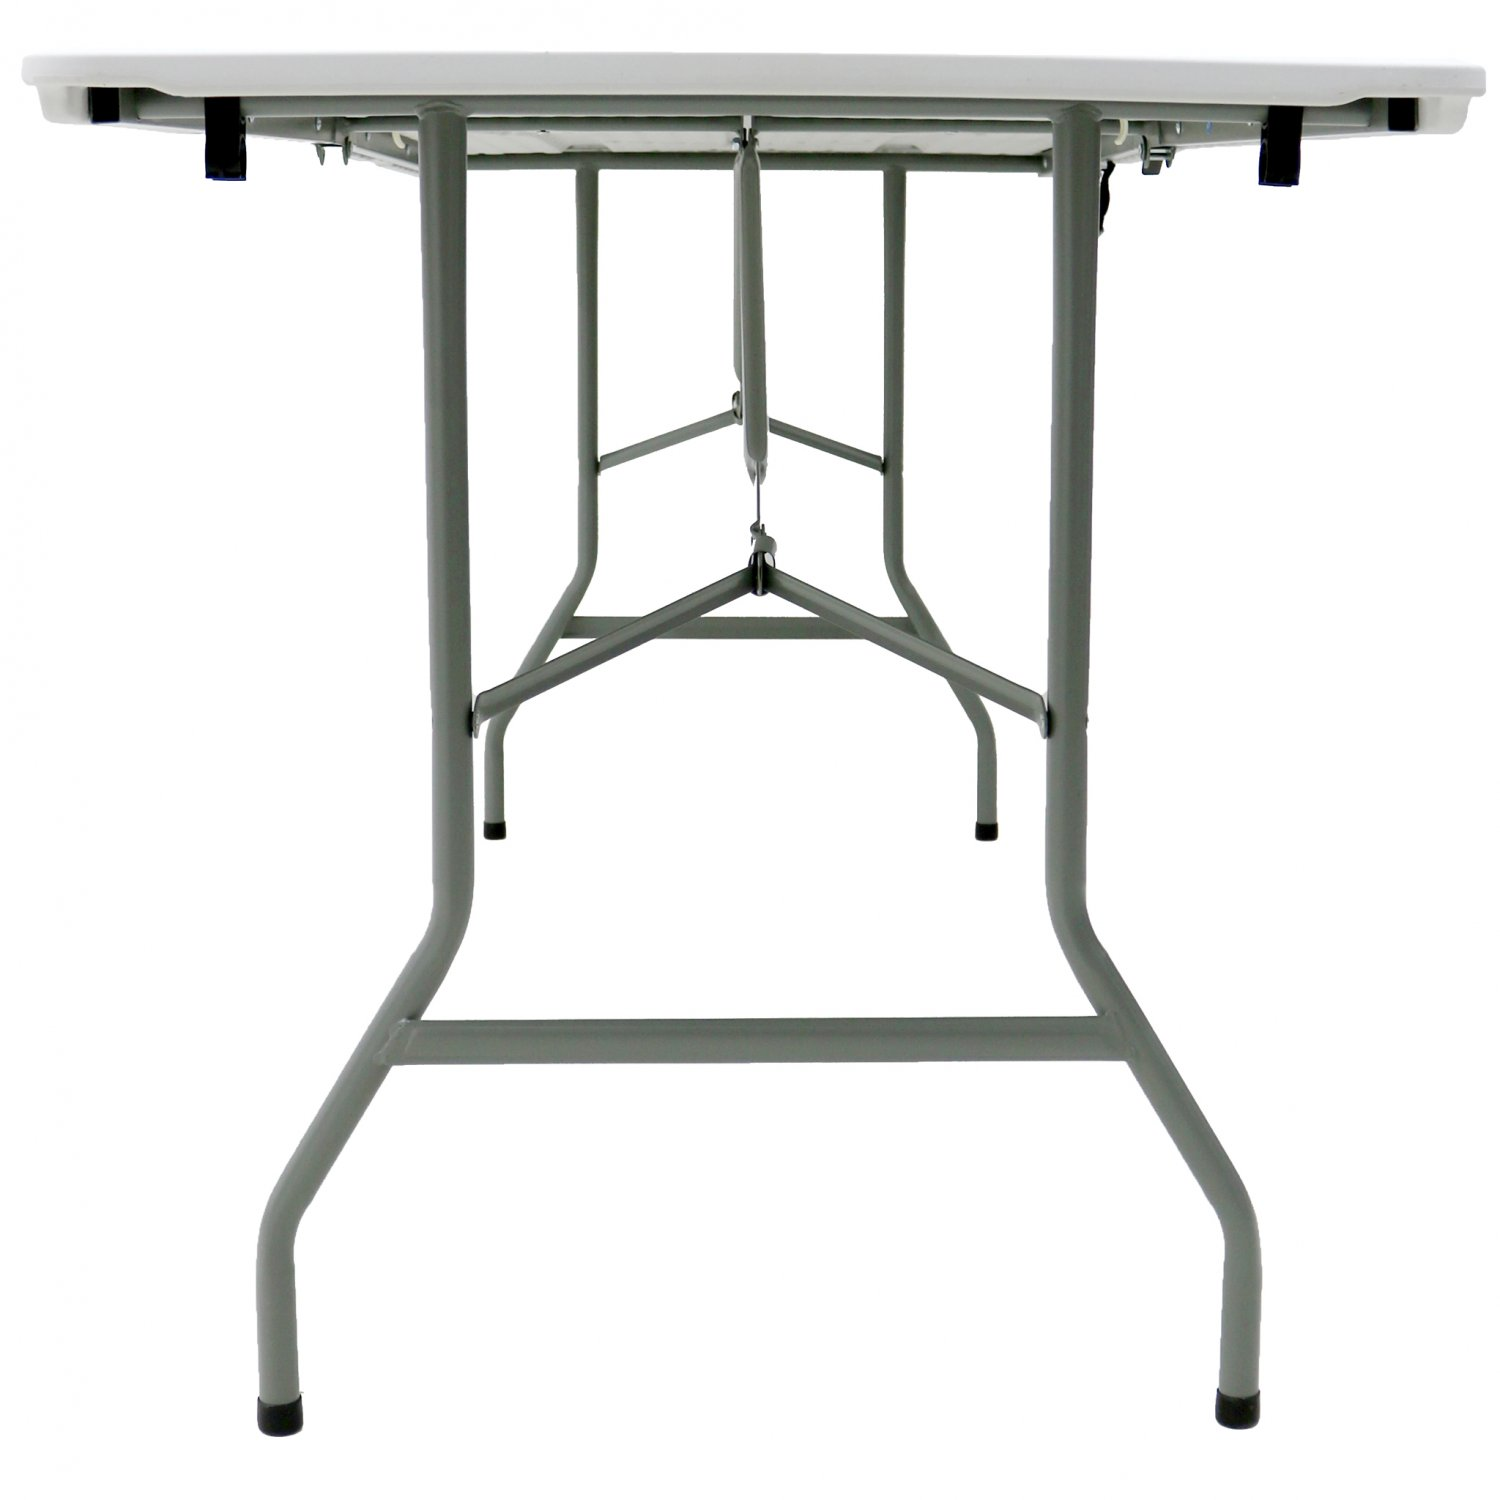 6ft Table With 8 Chairs: 6ft Folding Trestle Table Heavy Duty Catering Garden Party